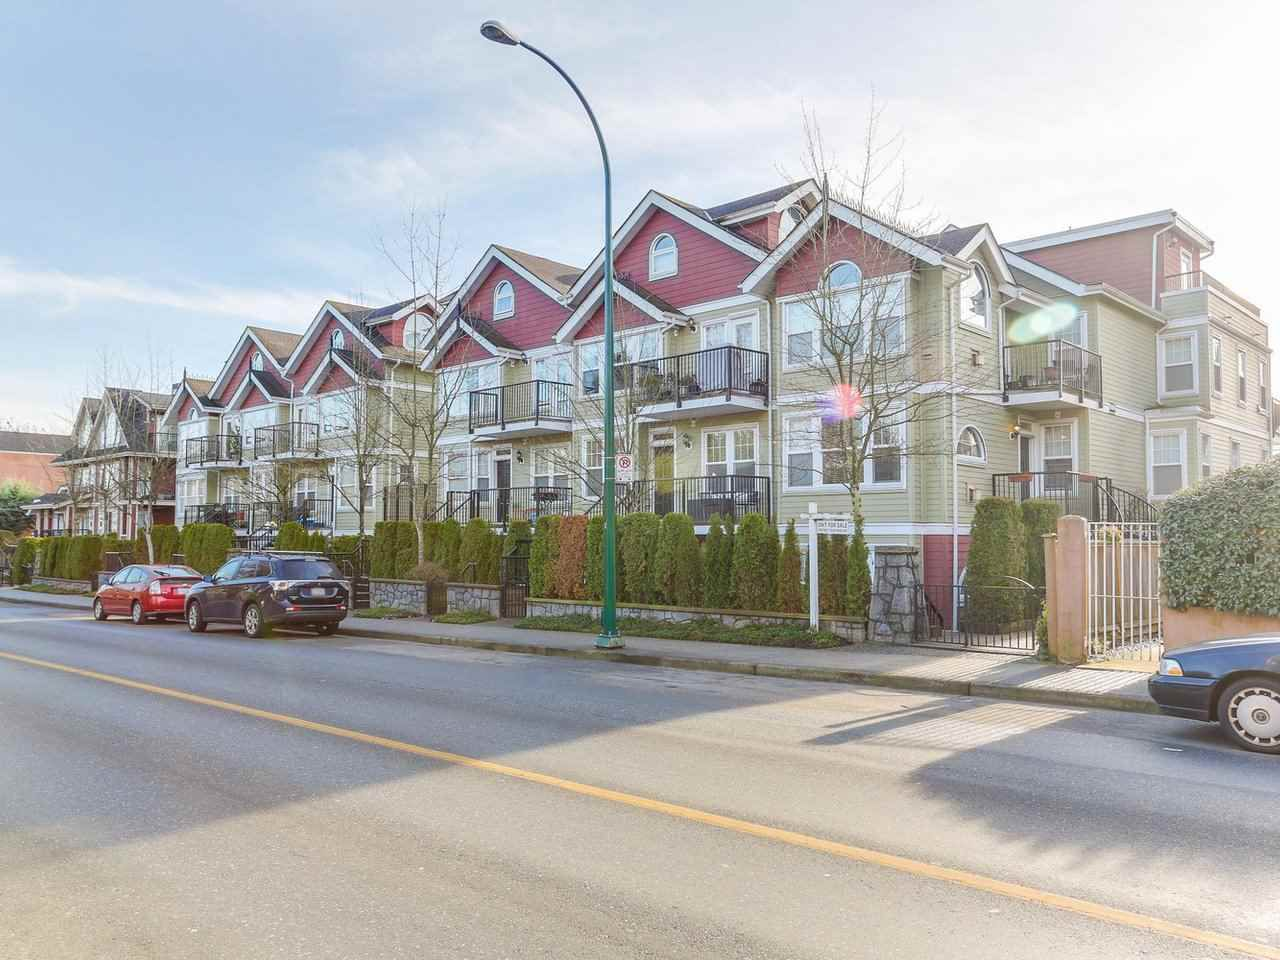 "Main Photo: 972 W 16TH Avenue in Vancouver: Cambie Townhouse for sale in ""Westhaven"" (Vancouver West)  : MLS®# R2228772"